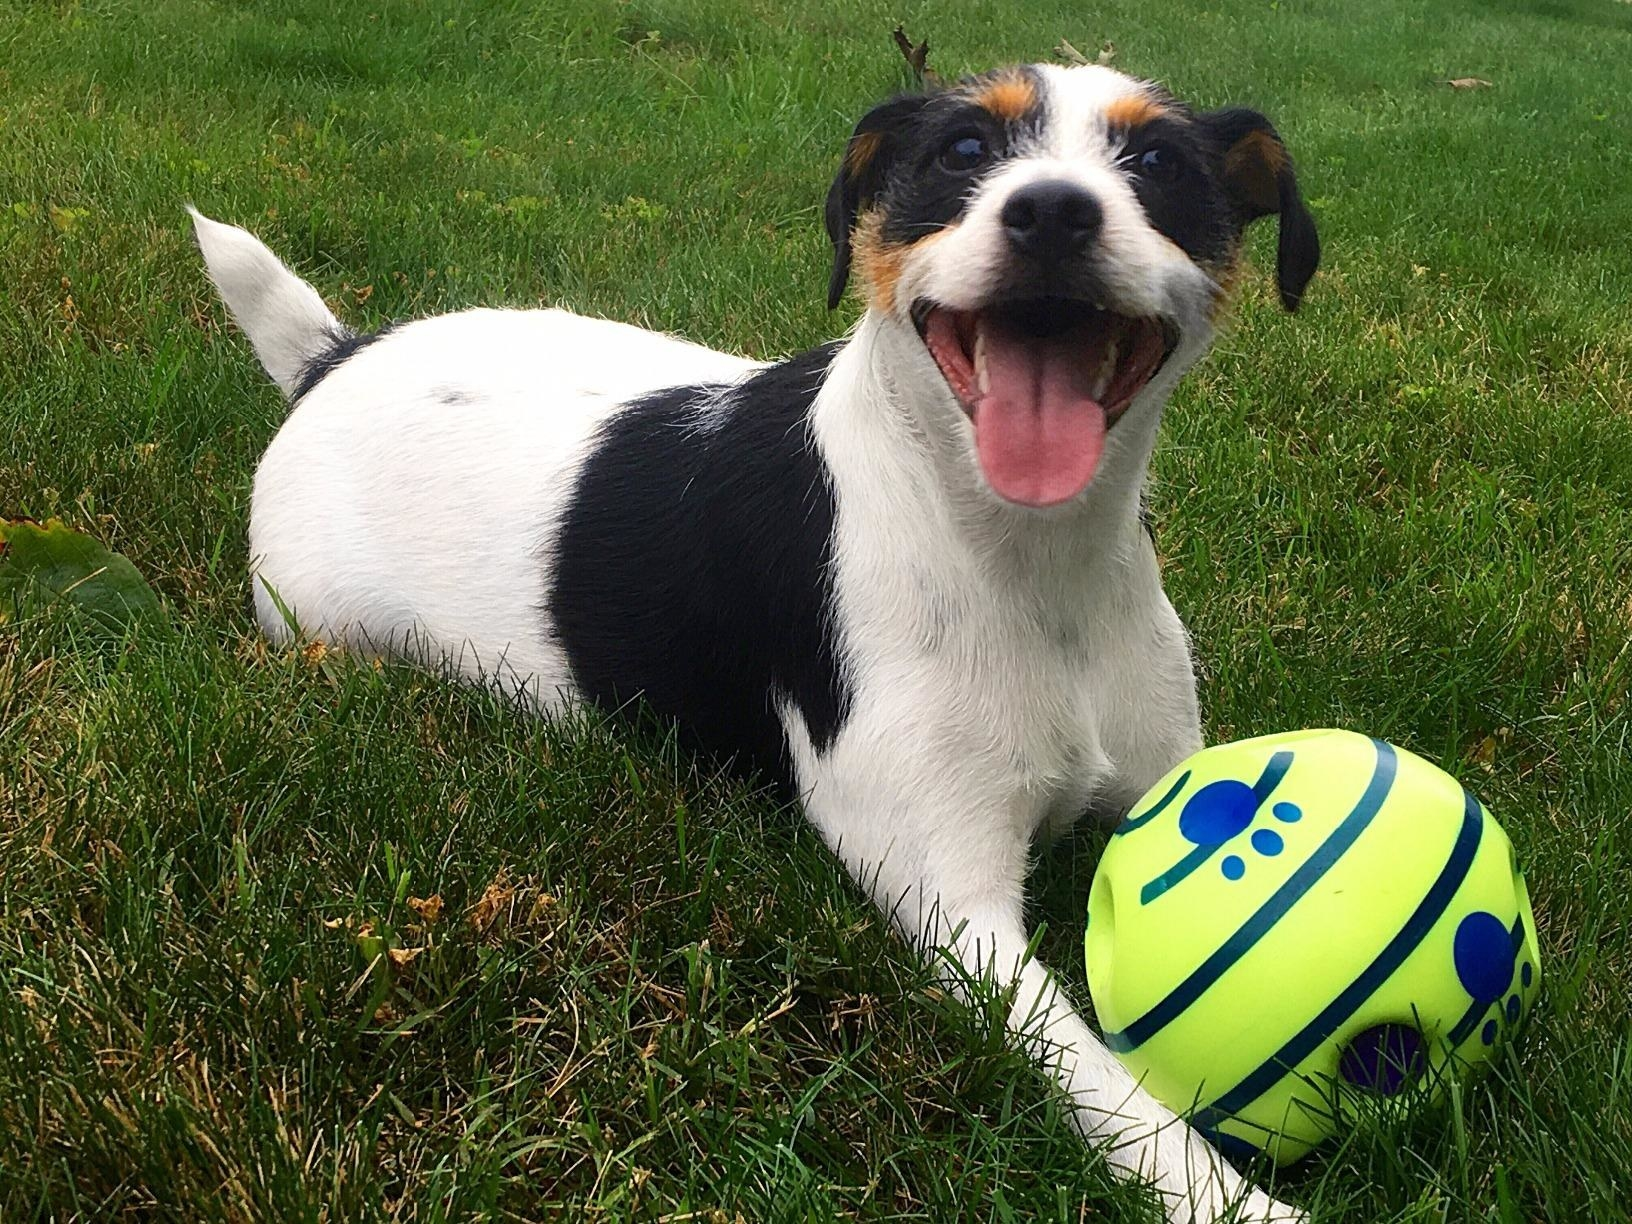 A very happy white, brown, and black dog sitting on grass with the ball in front of him